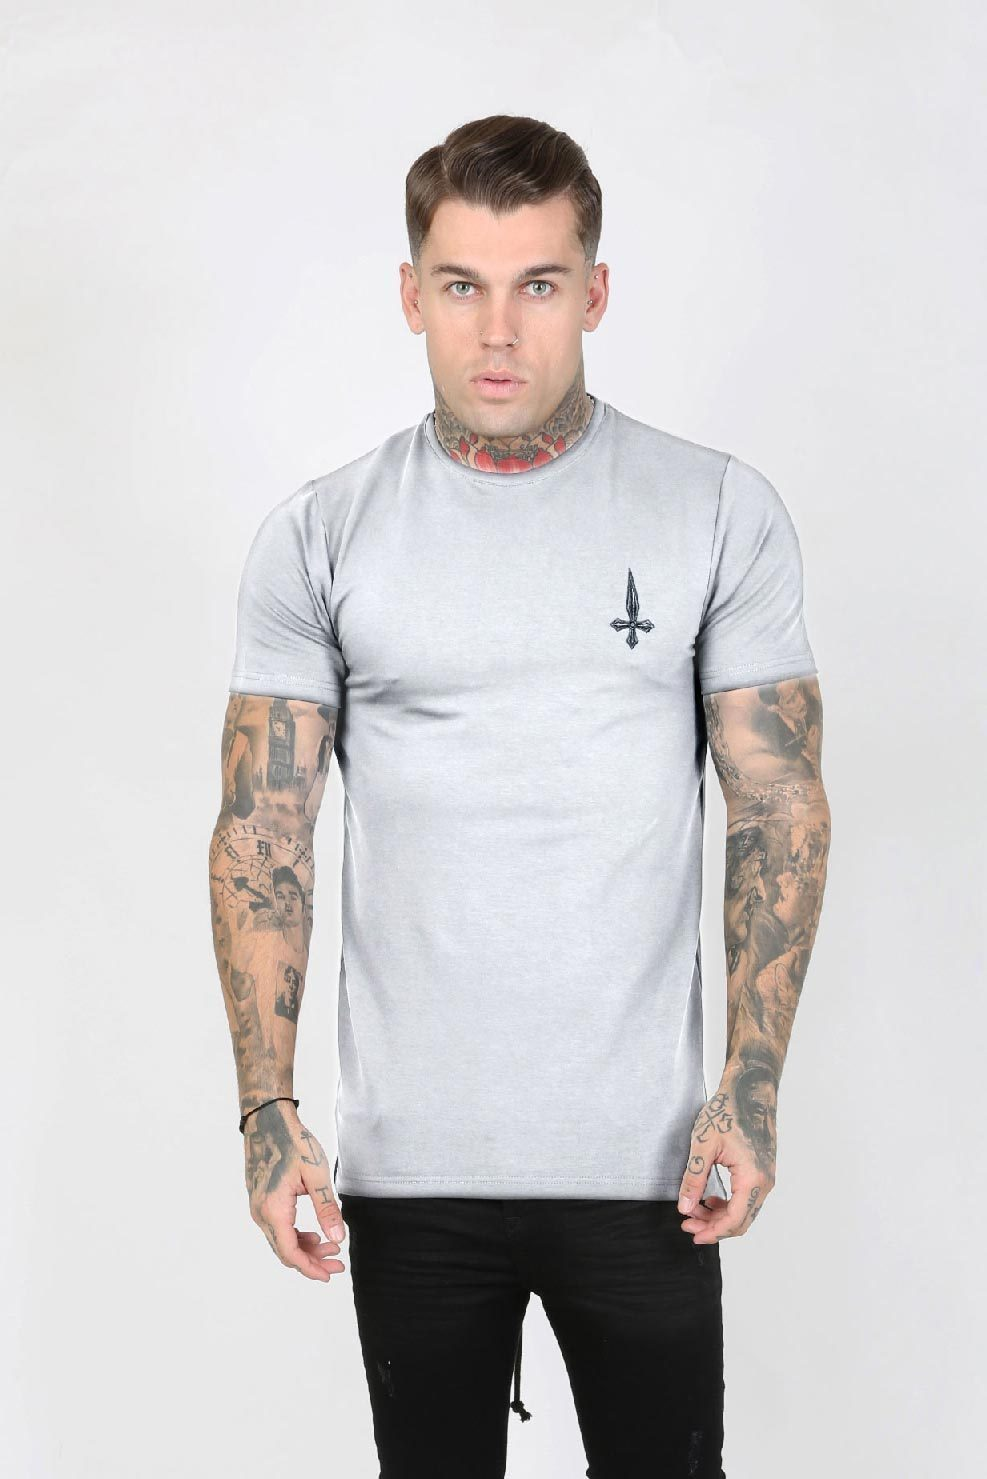 Judas Sinned Parka Hem Men's T-Shirt - Grey - Judas Sinned Clothing